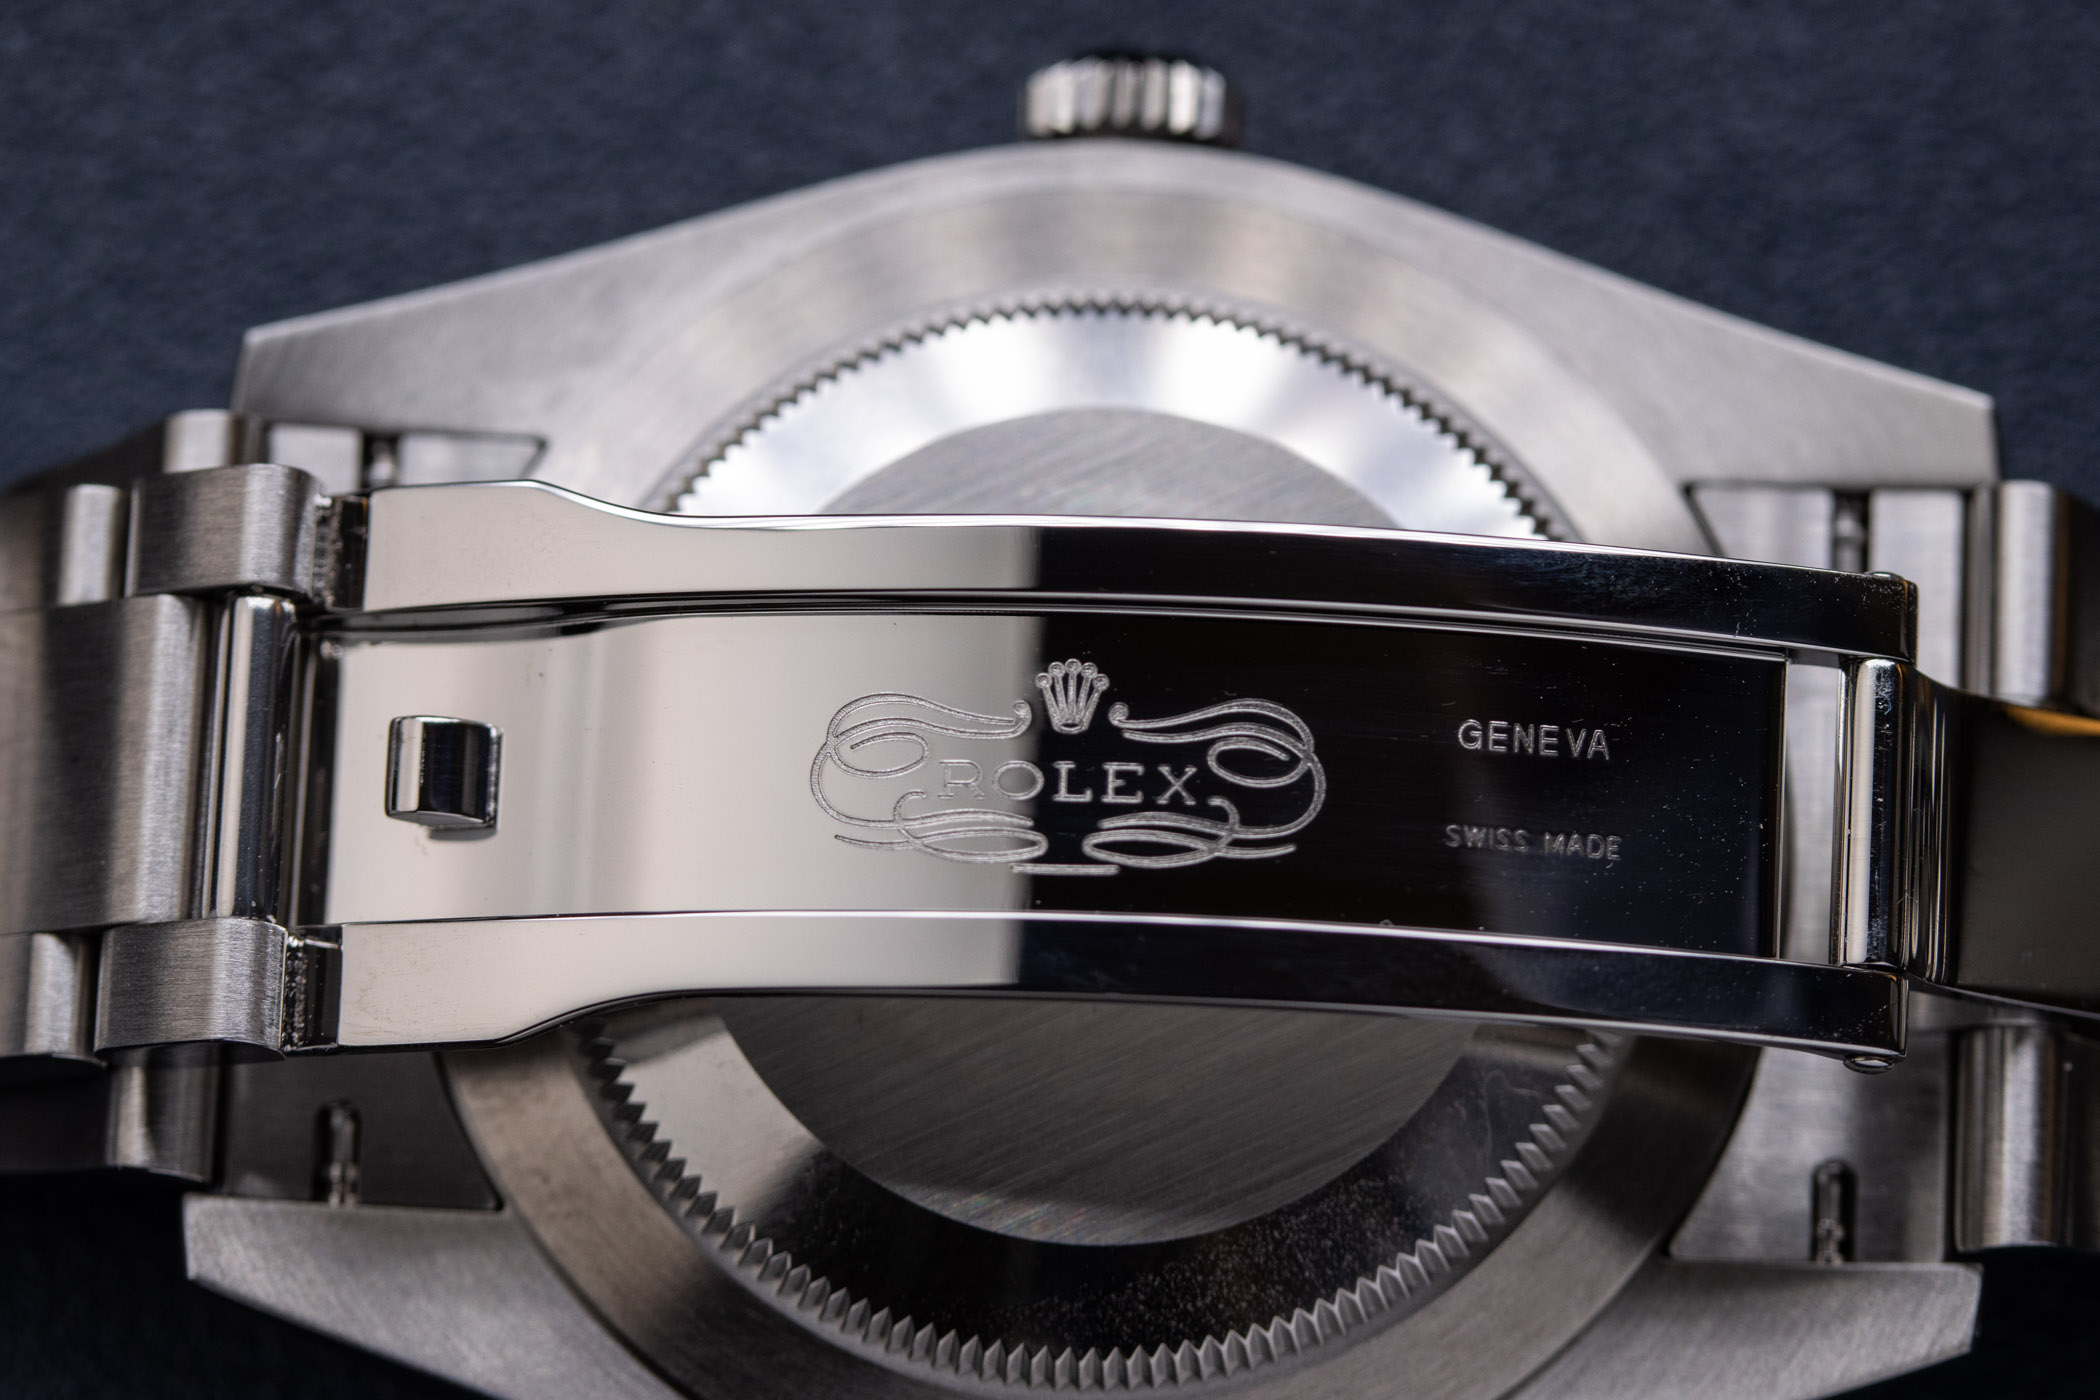 Rolex Oyster Perpetual 41 bright black dial 124300-0002 - review